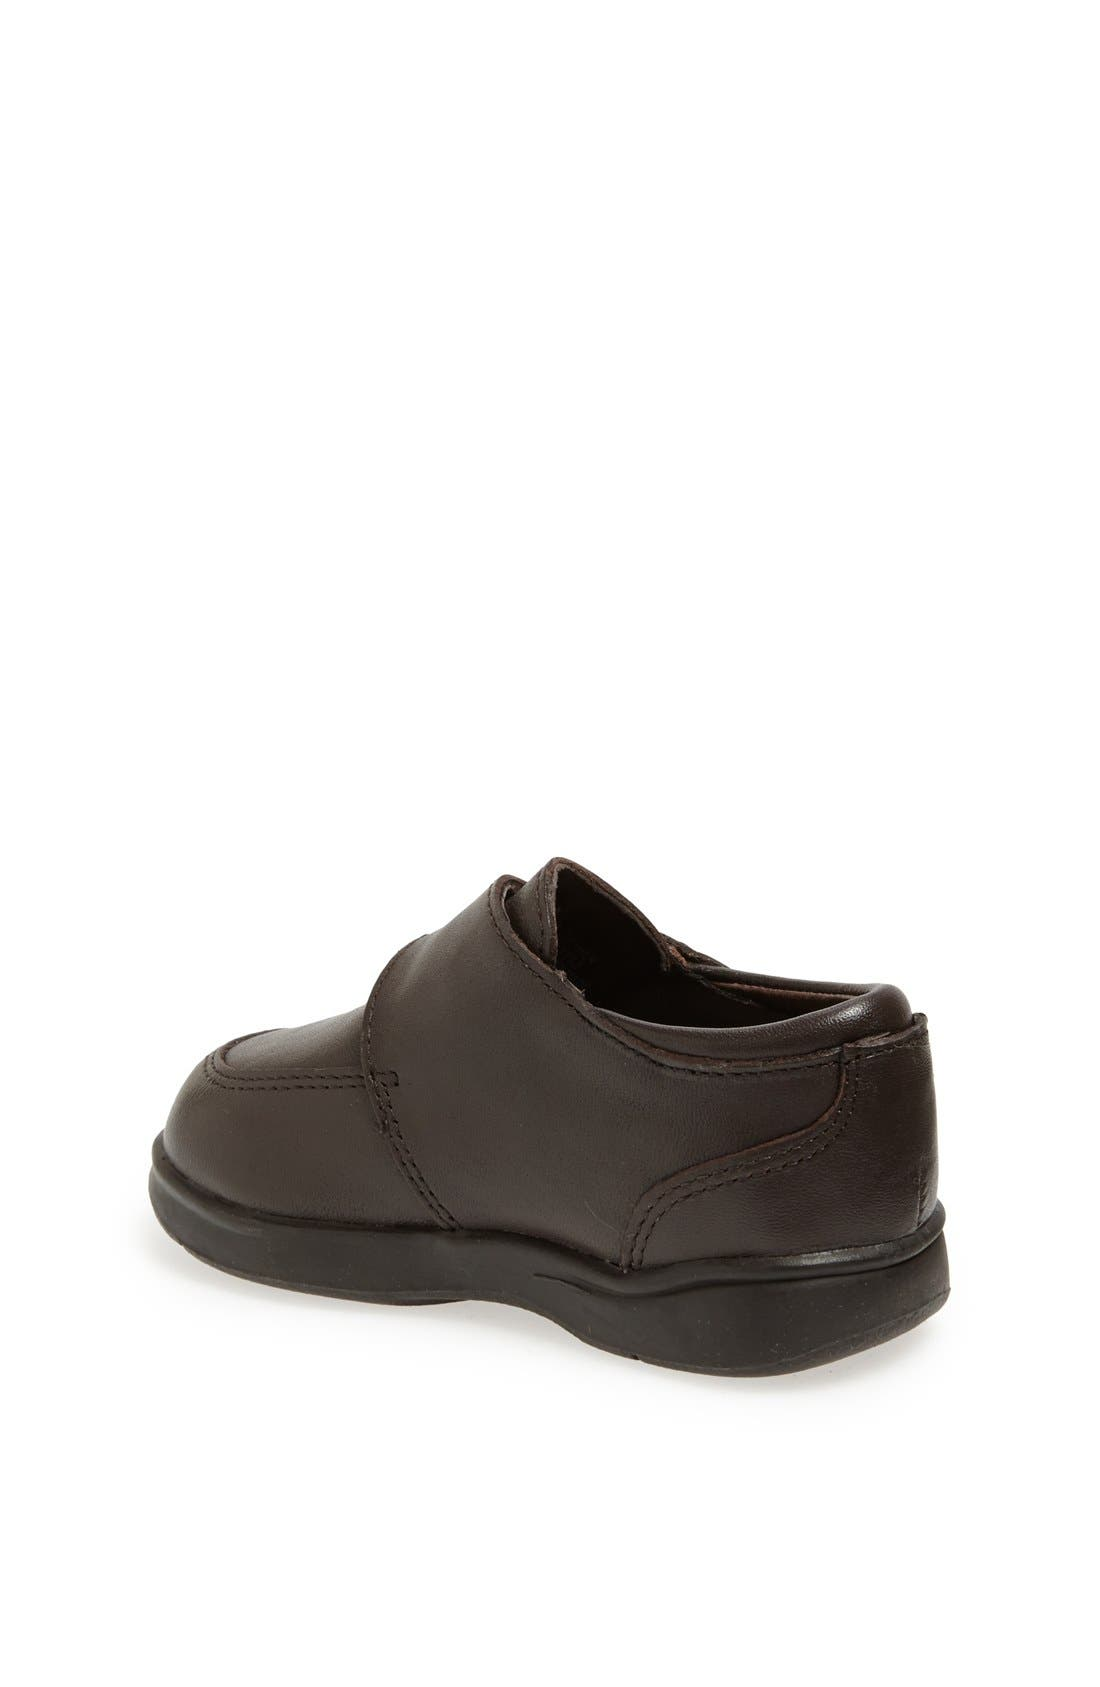 Reaction Kenneth Cole 'Tiny Flex' Slip-On,                             Alternate thumbnail 2, color,                             204